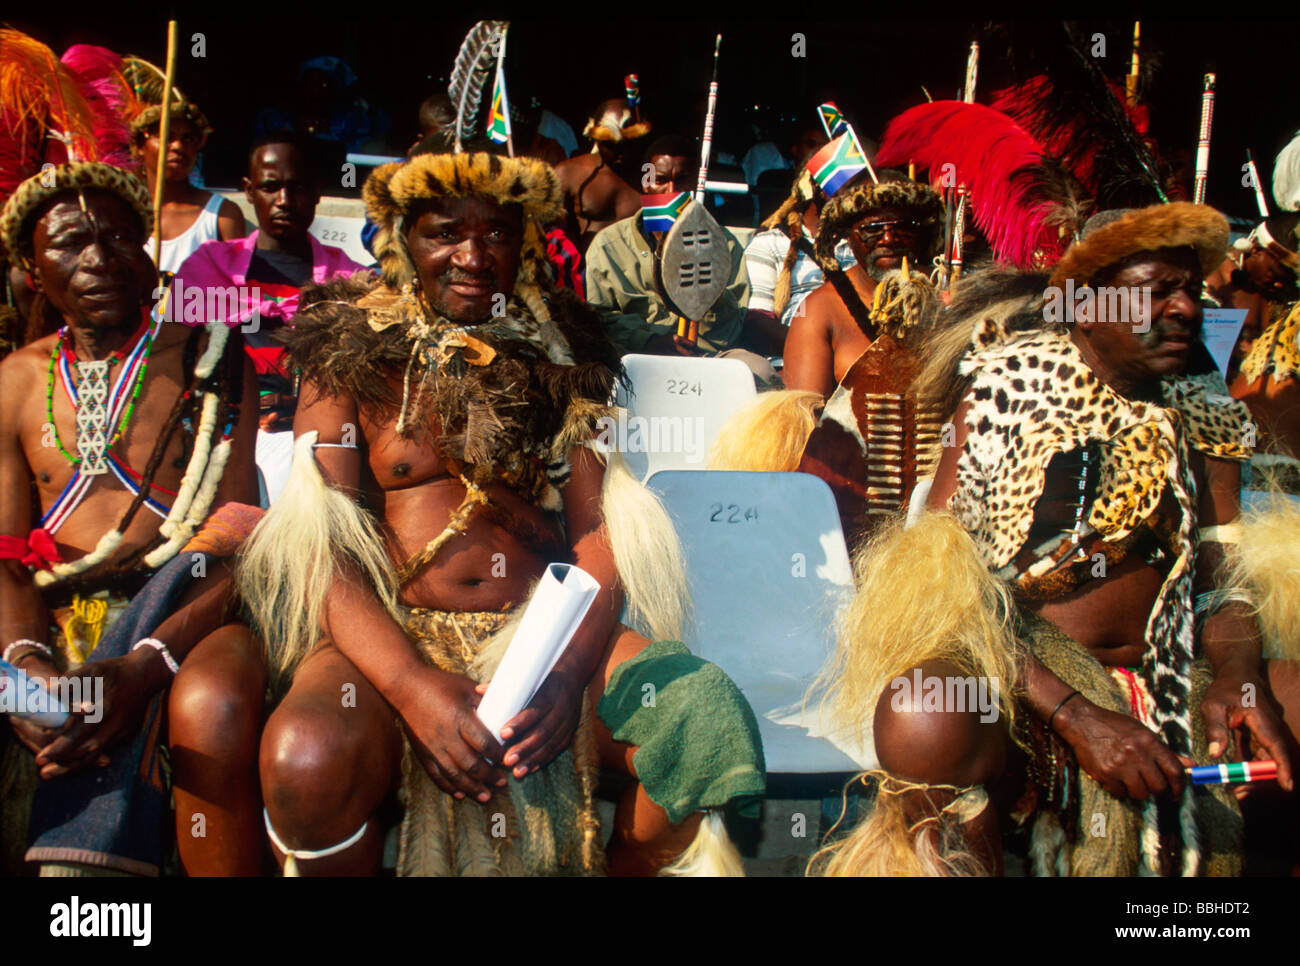 7 2002 Absa Stadium Durban KwaZulu Natal South Africa nMembers of Prince Gideon ZuluÕs private army at the - Stock Image